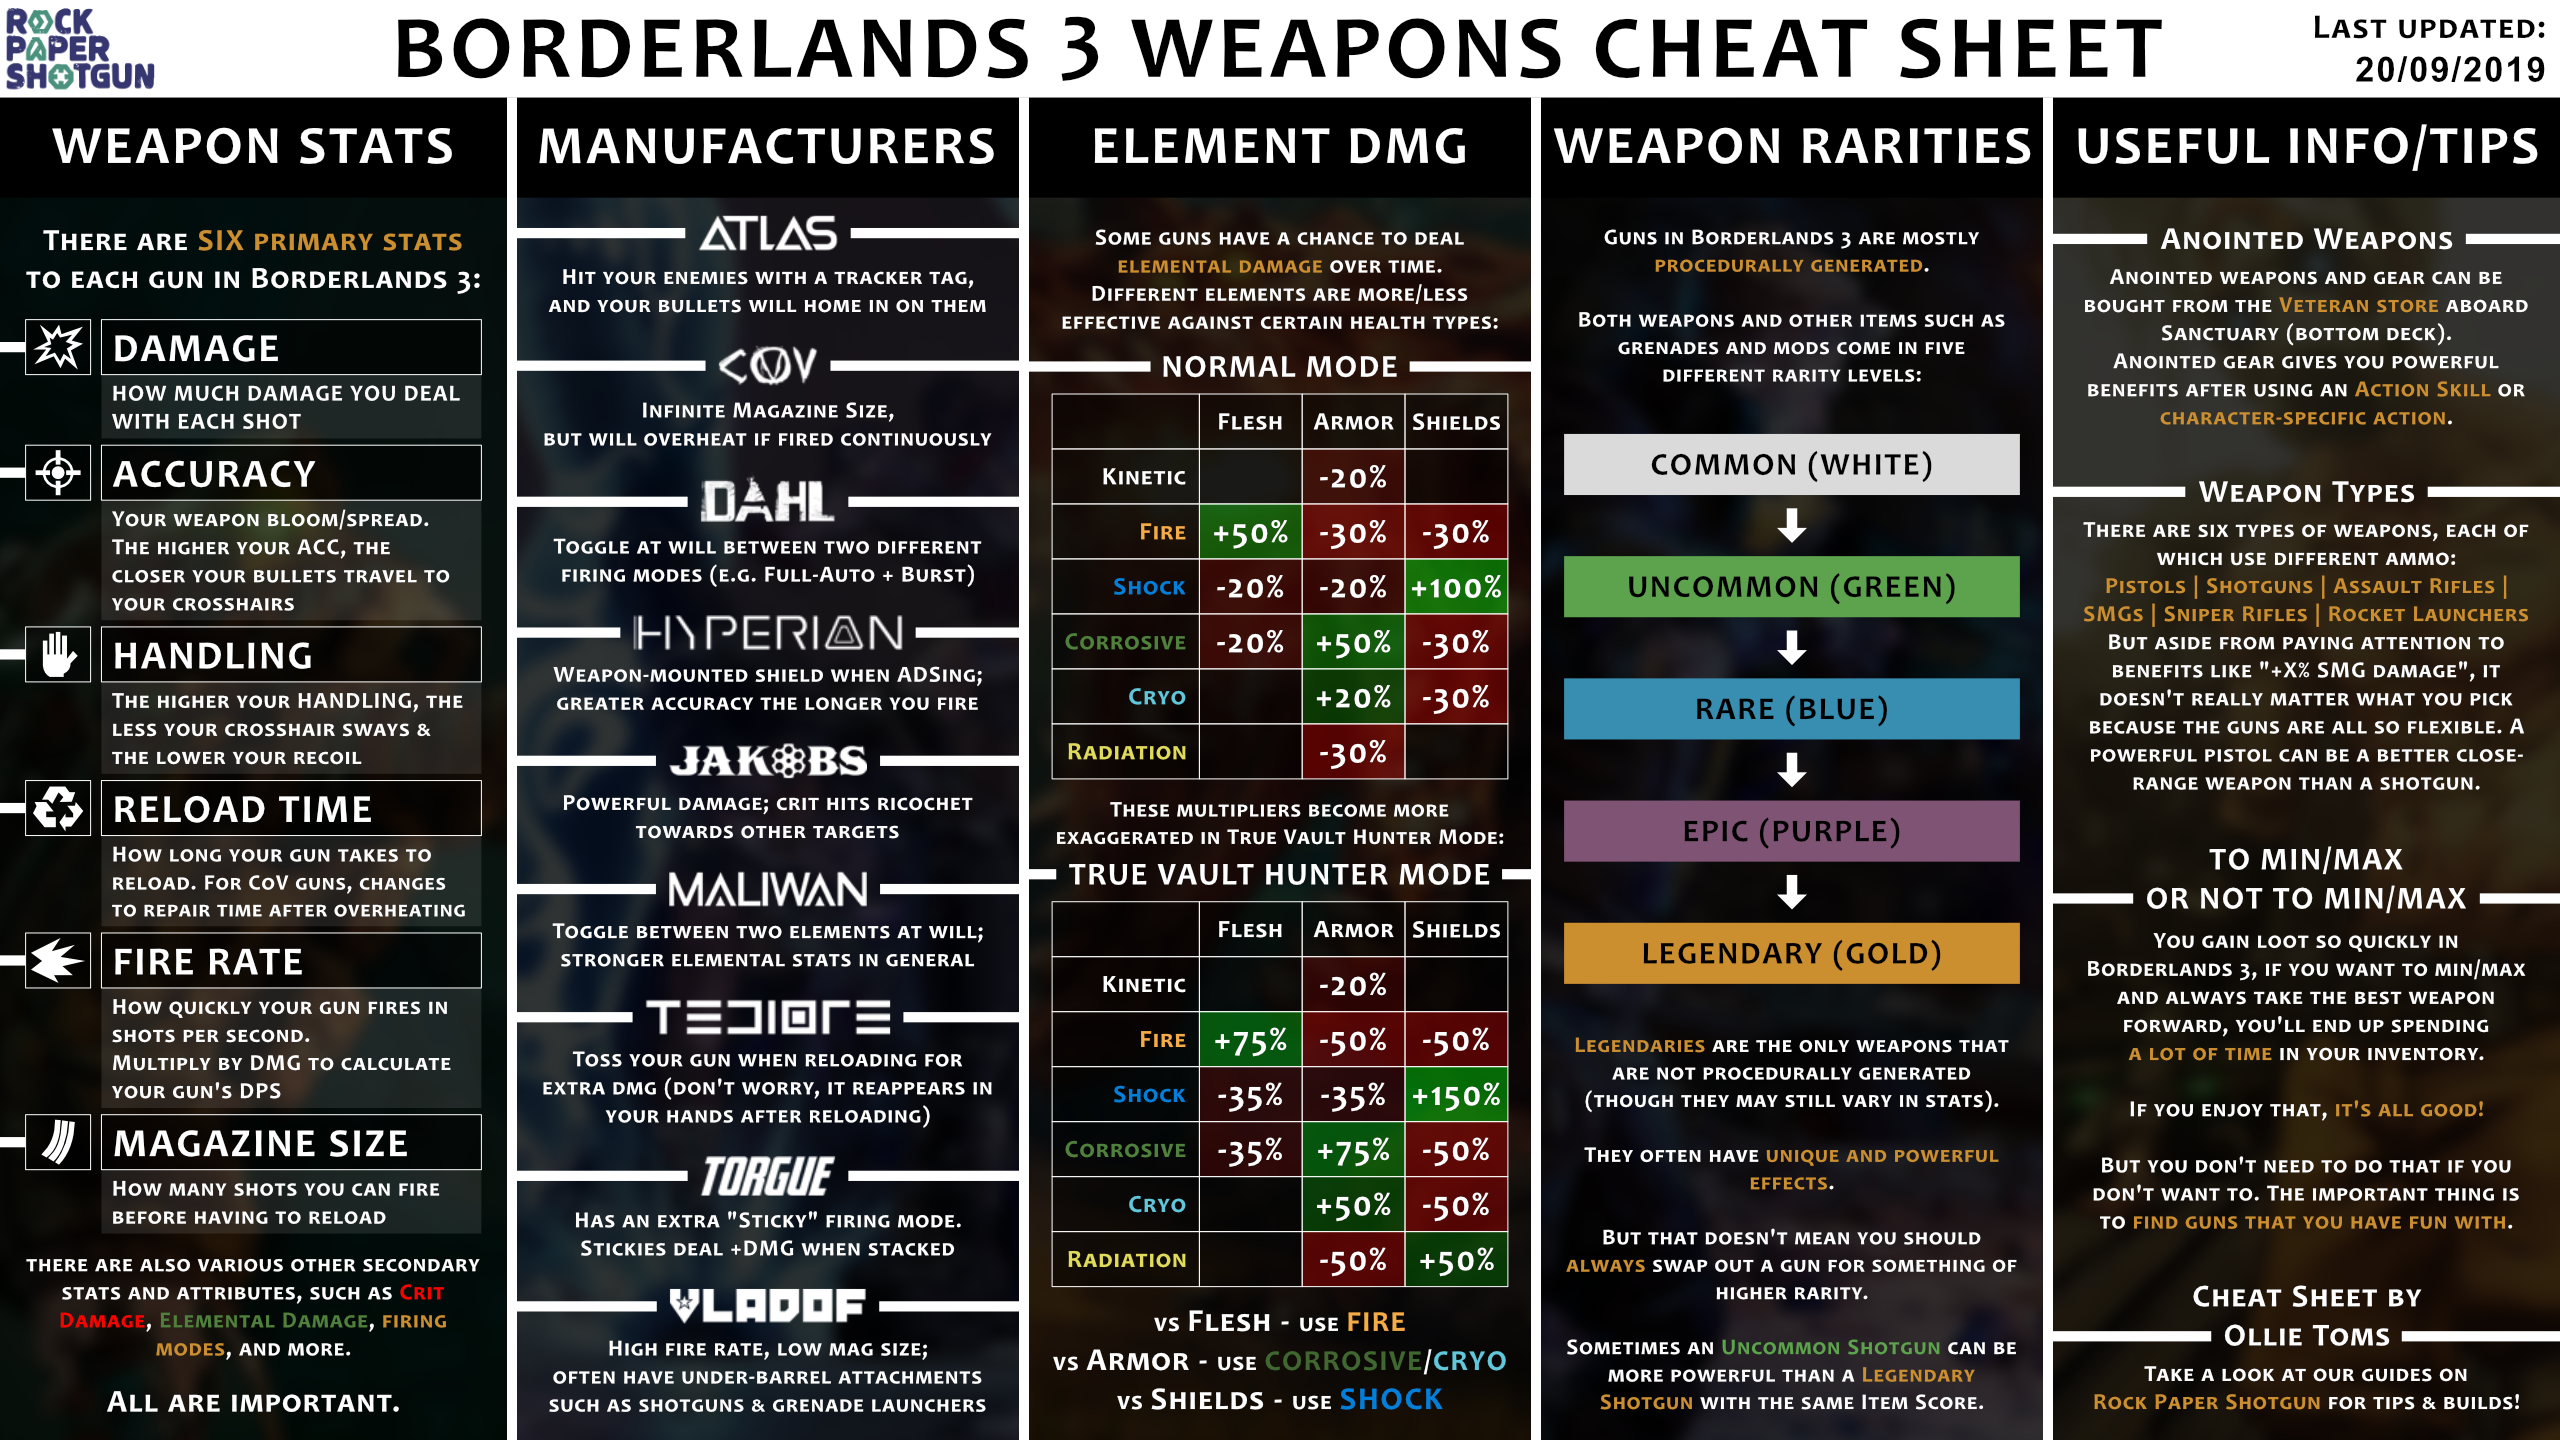 Borderlands 3 weapons cheat sheet